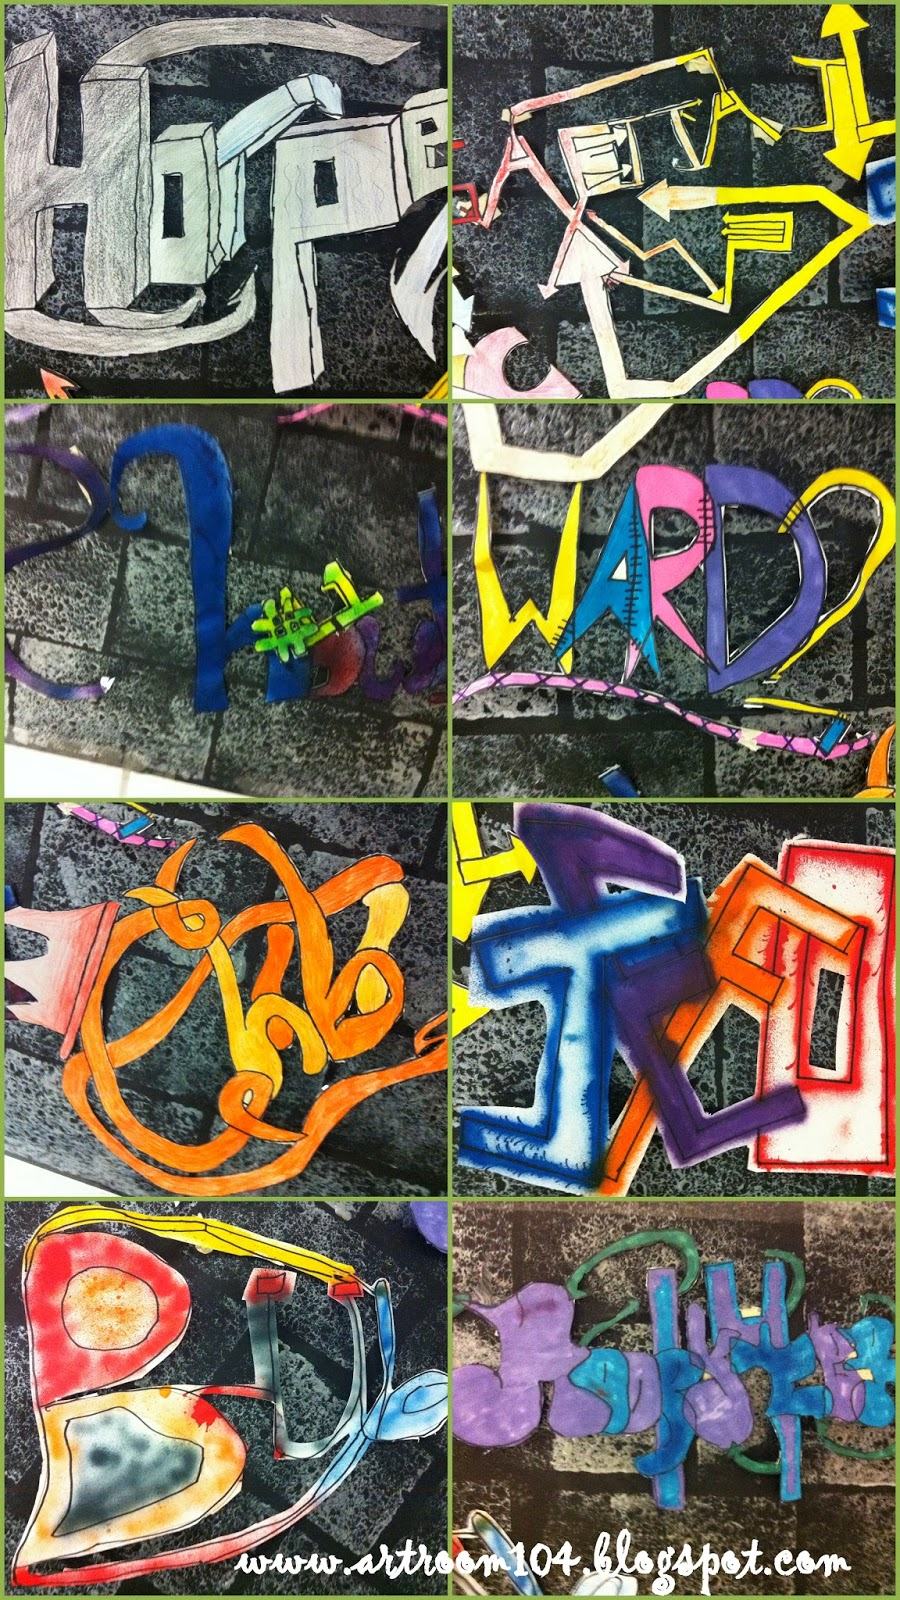 Graffiti wall rubric - I Passed Back The Graded Rubrics And Asked Students To Reflect On Their Tags Their Last Homework Assignment Was To Finalize And Redraw Their Tags Using My